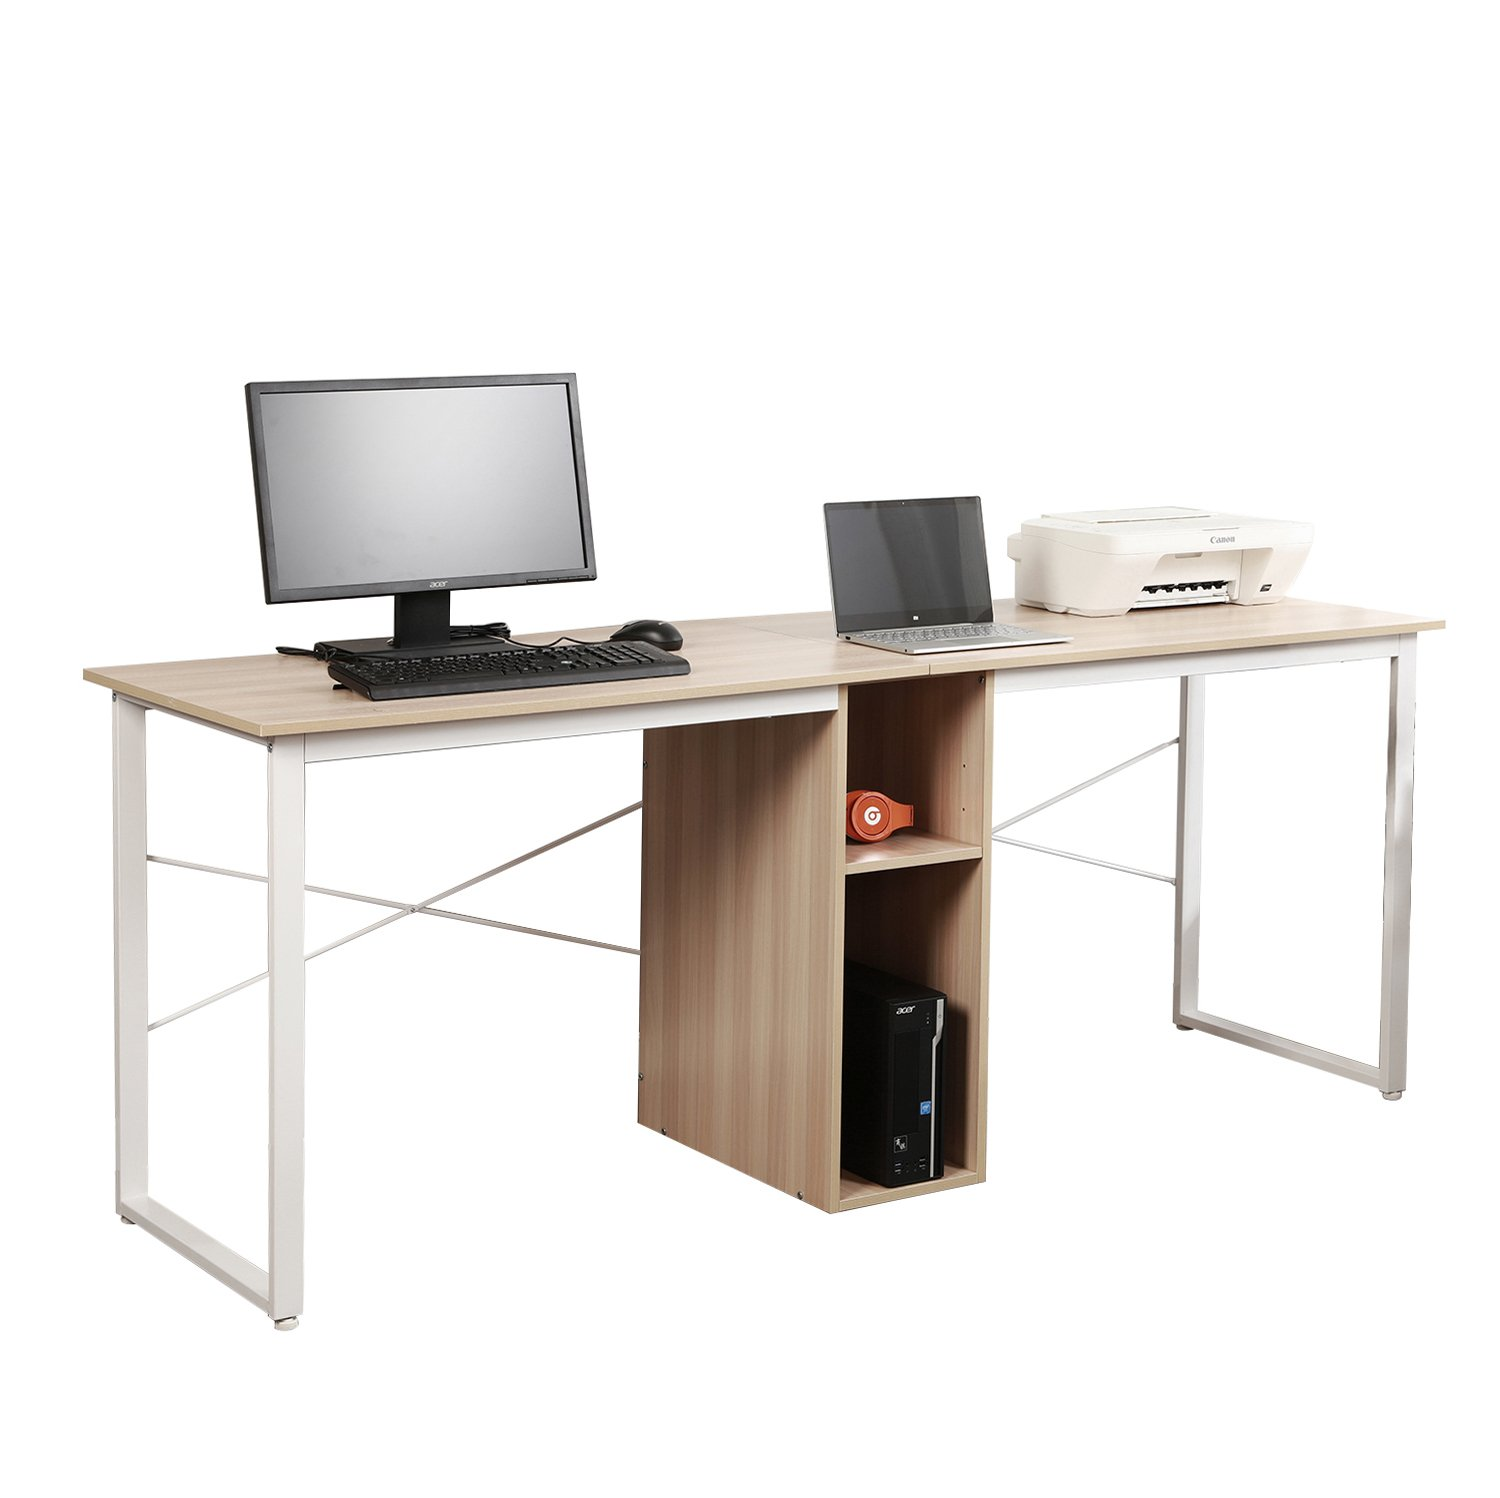 Soges 2-Person Home Office Desk,78 inches Large Double Workstation Desk, Writing Desk with Storage, HZ011-200-MO by soges